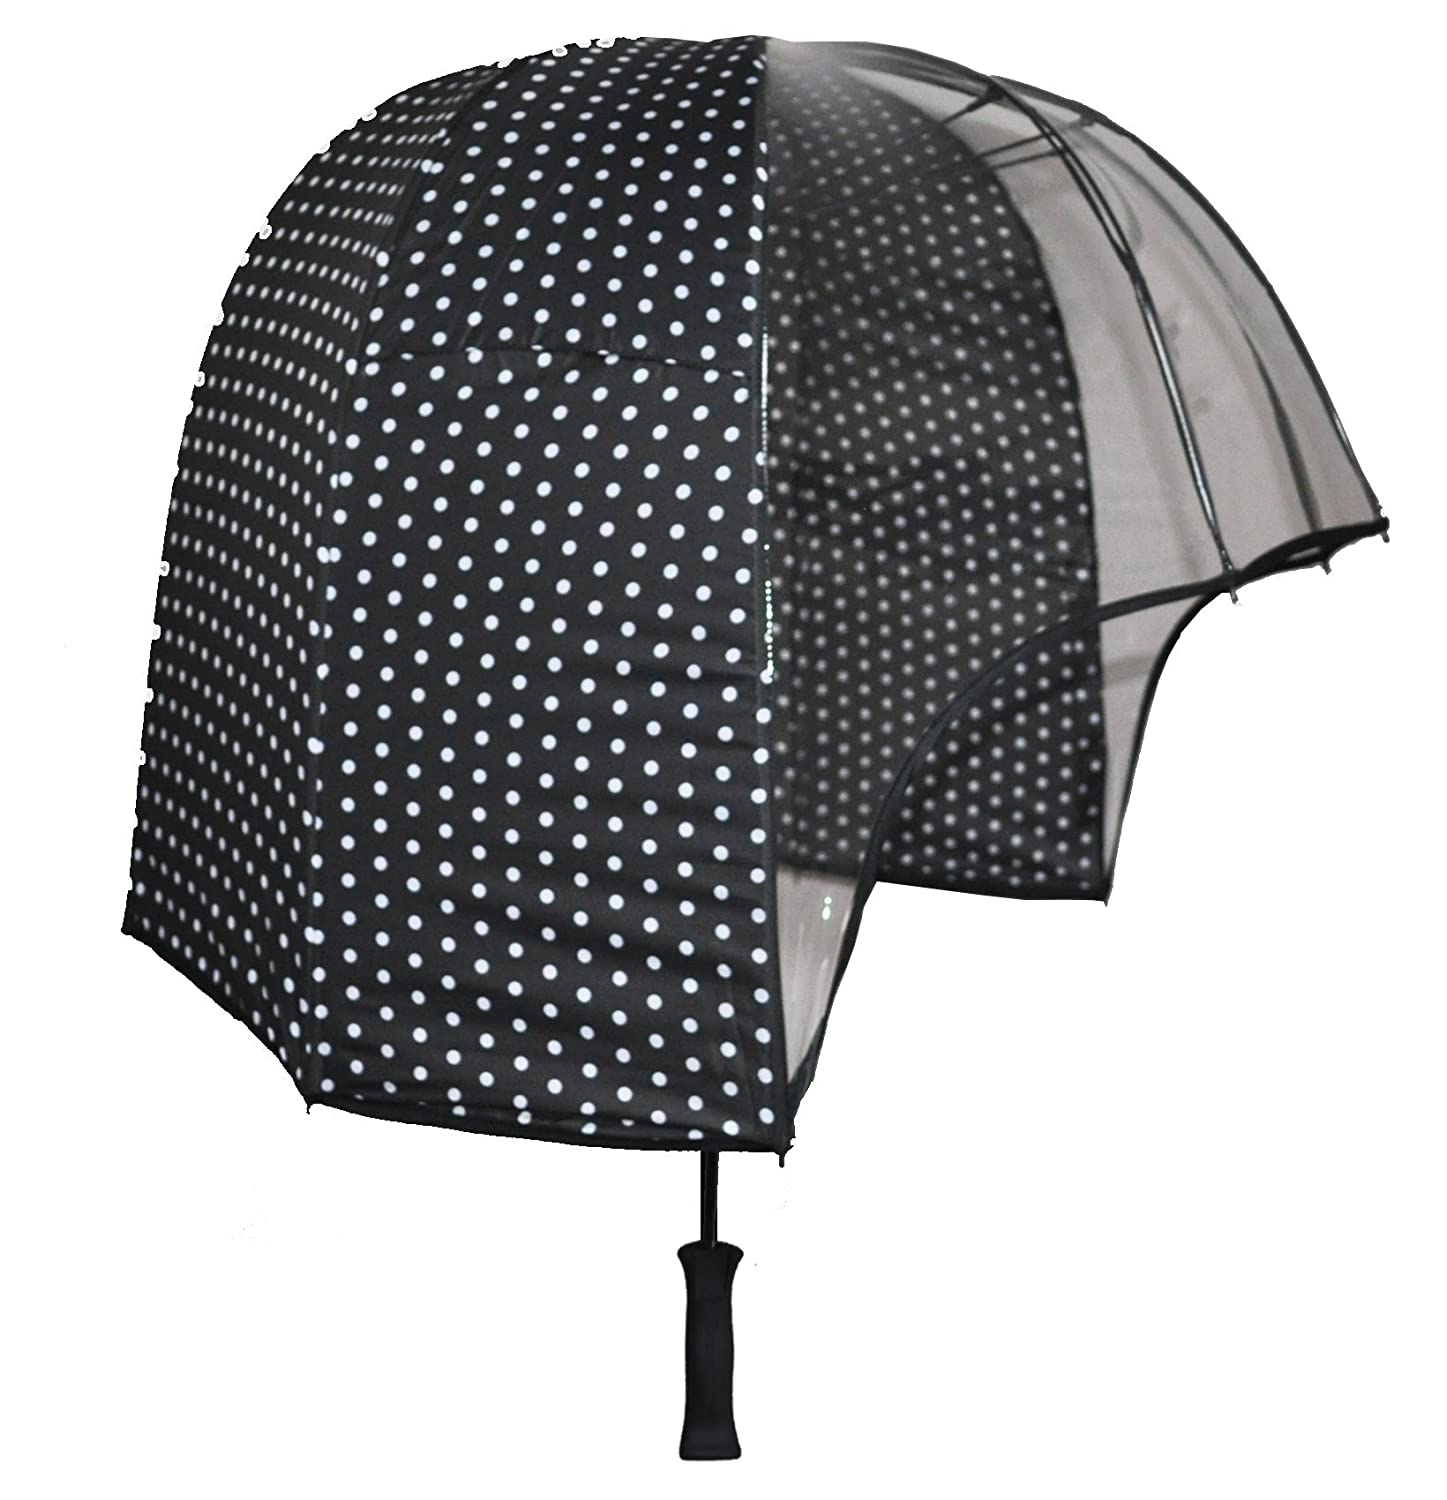 c5cc376e6c3c2 windproof dome umbrella Black polkadot - tested strong lightweight vented  canopy free carrying shoulder sleeve. by Rainshader: Amazon.co.uk: Sports &  ...